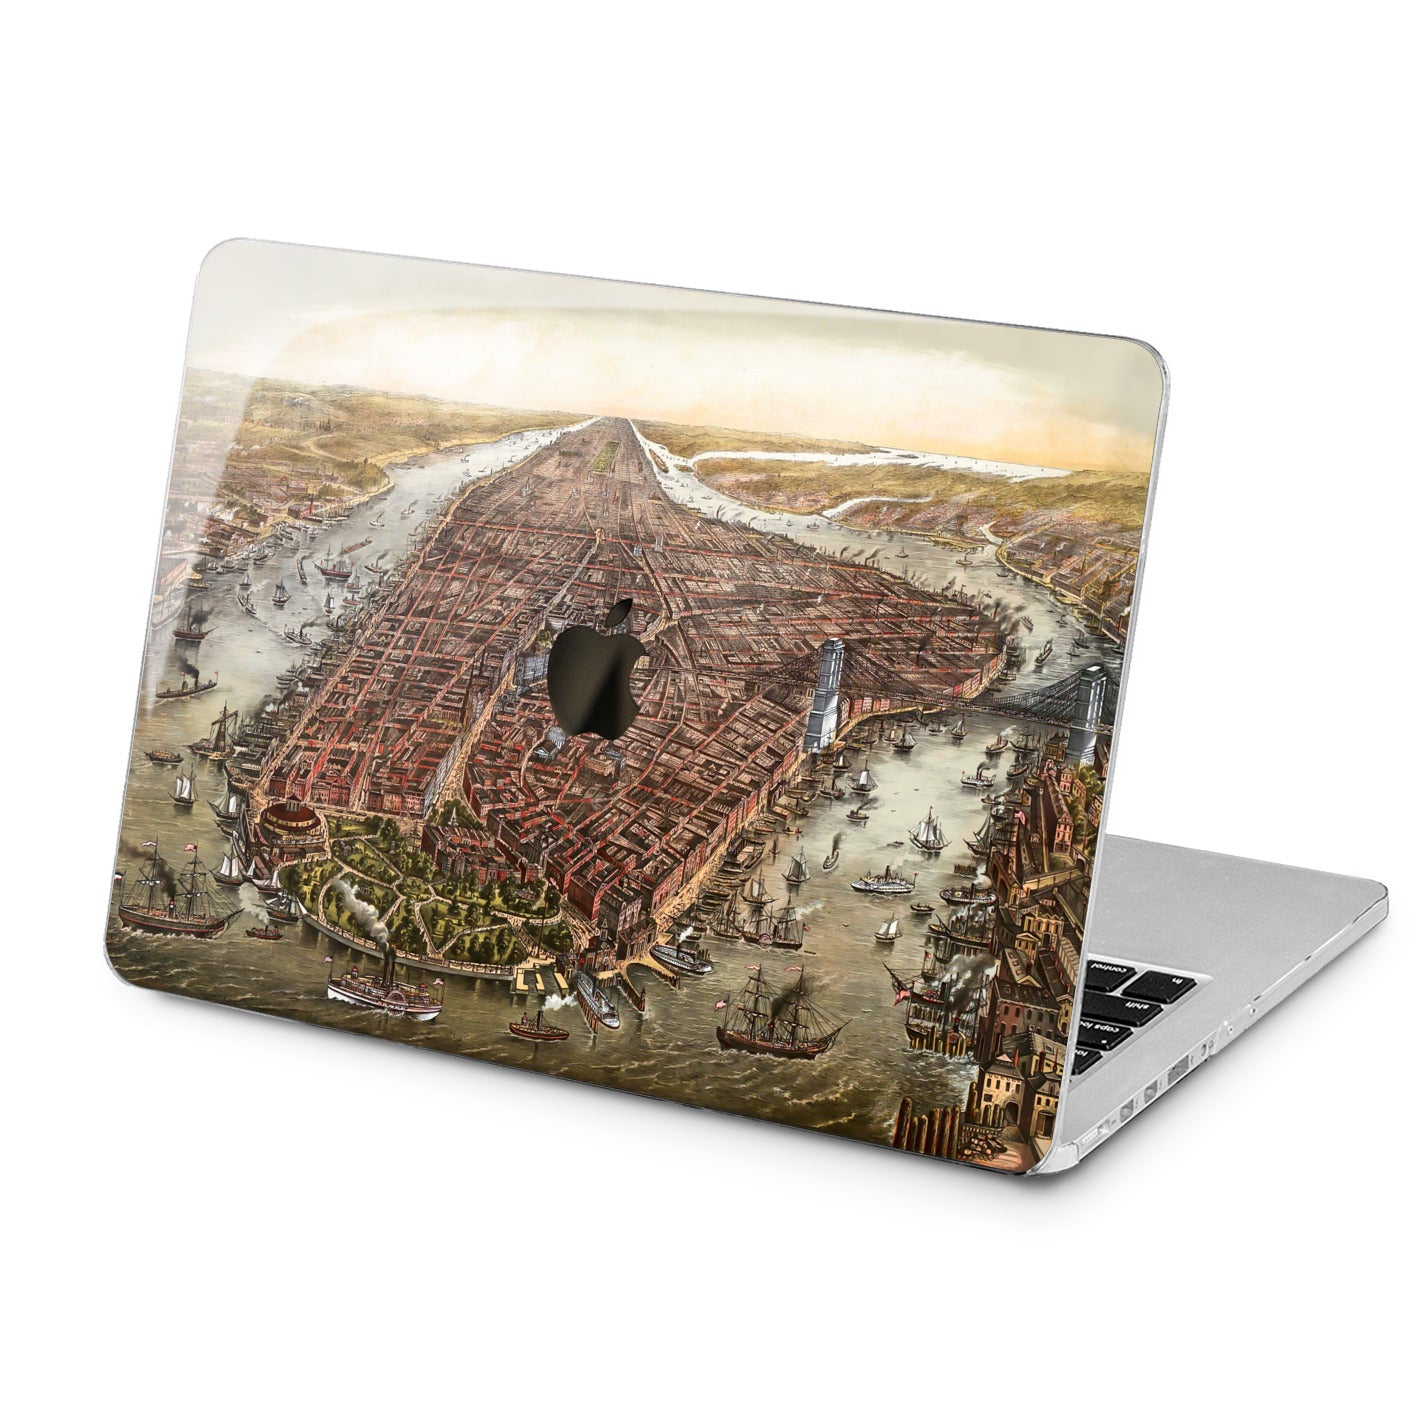 Lex Altern Lex Altern Old City Case for your Laptop Apple Macbook.